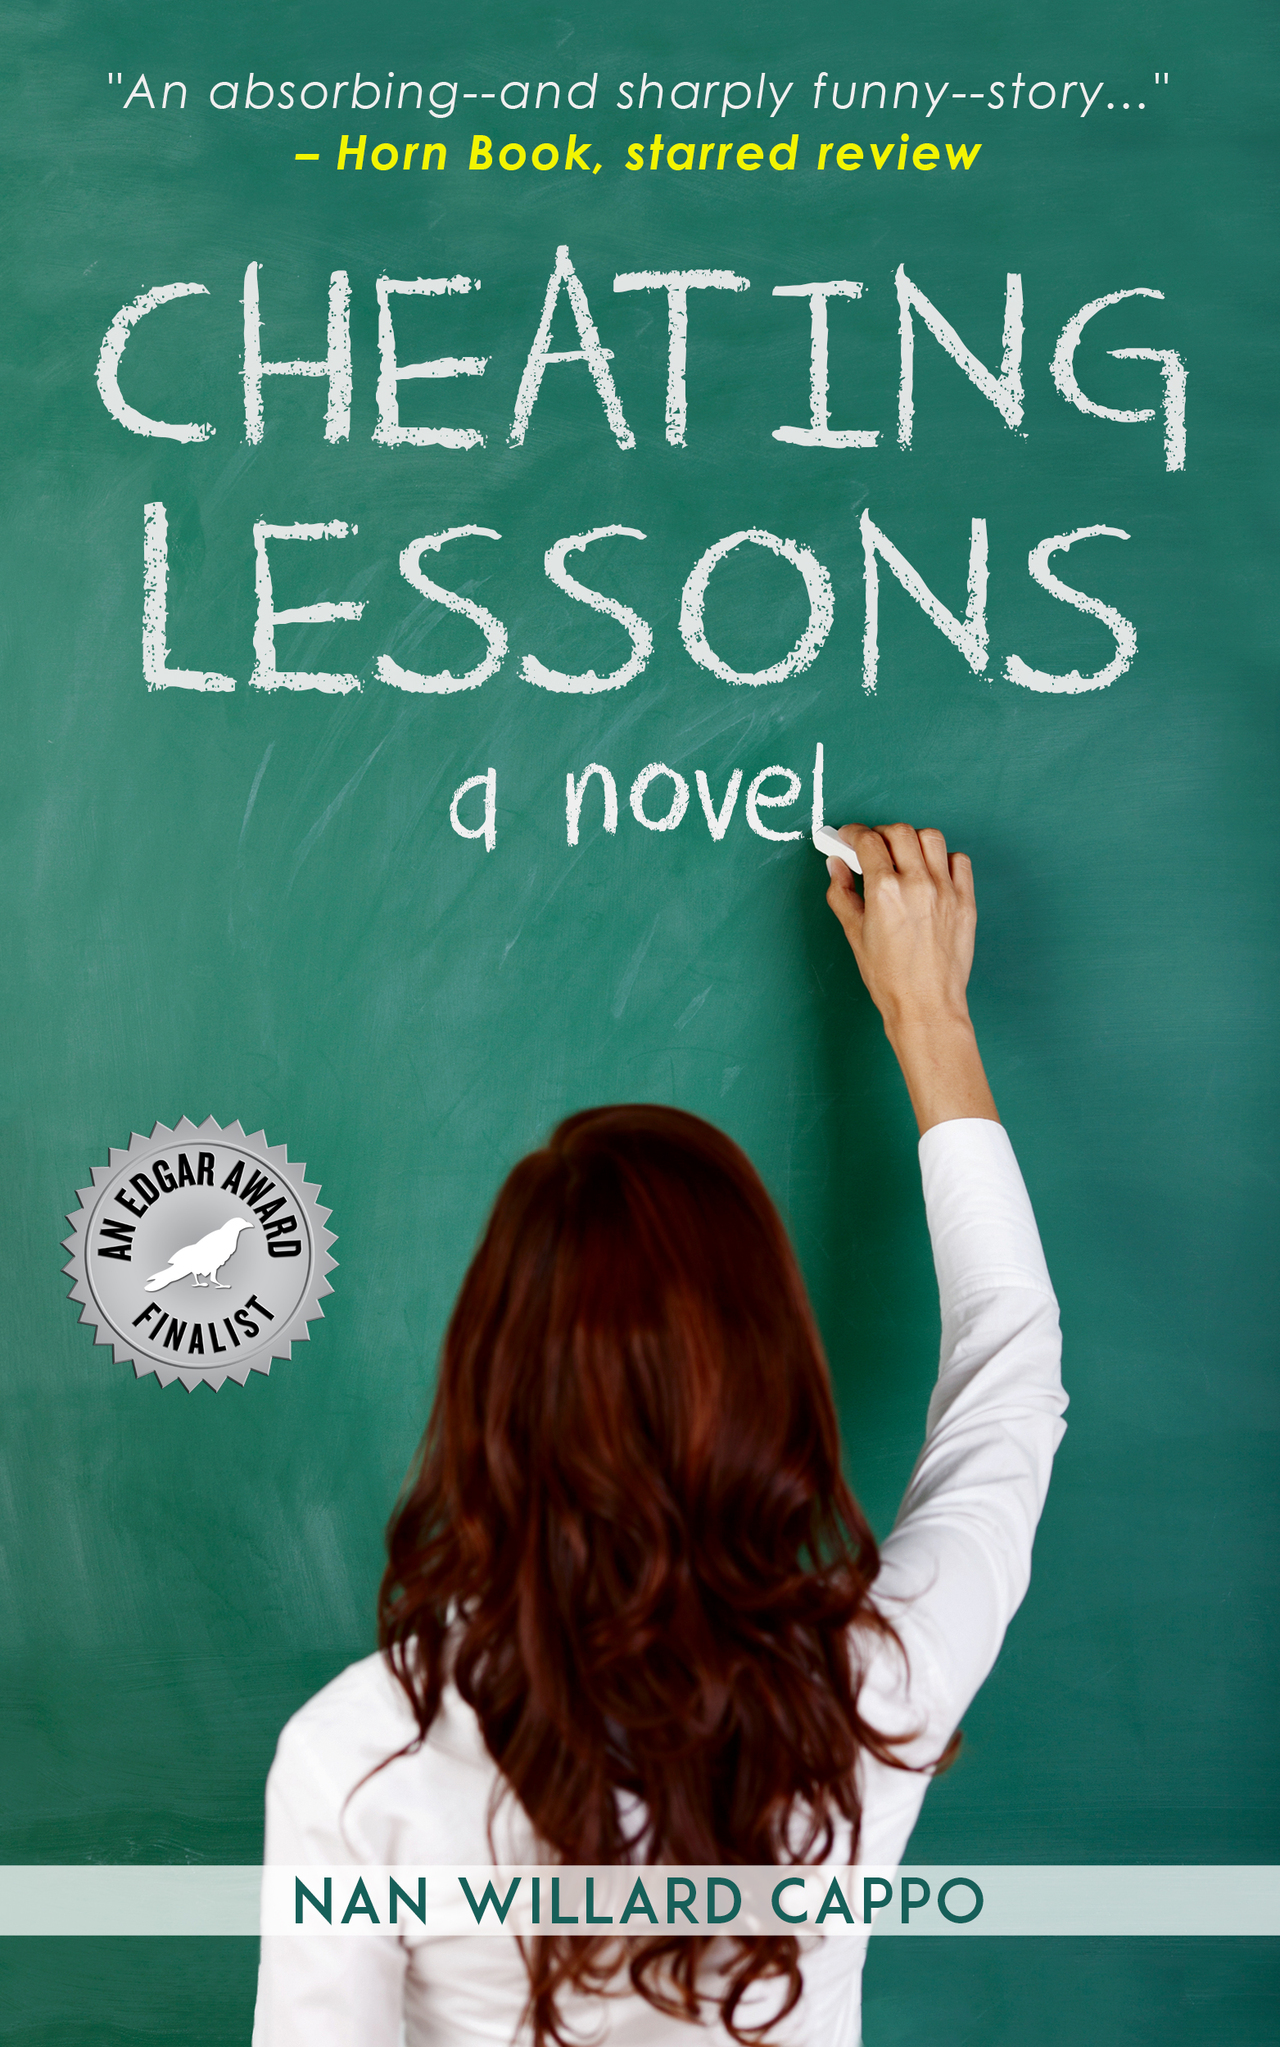 Cheatinglessonsfront cover